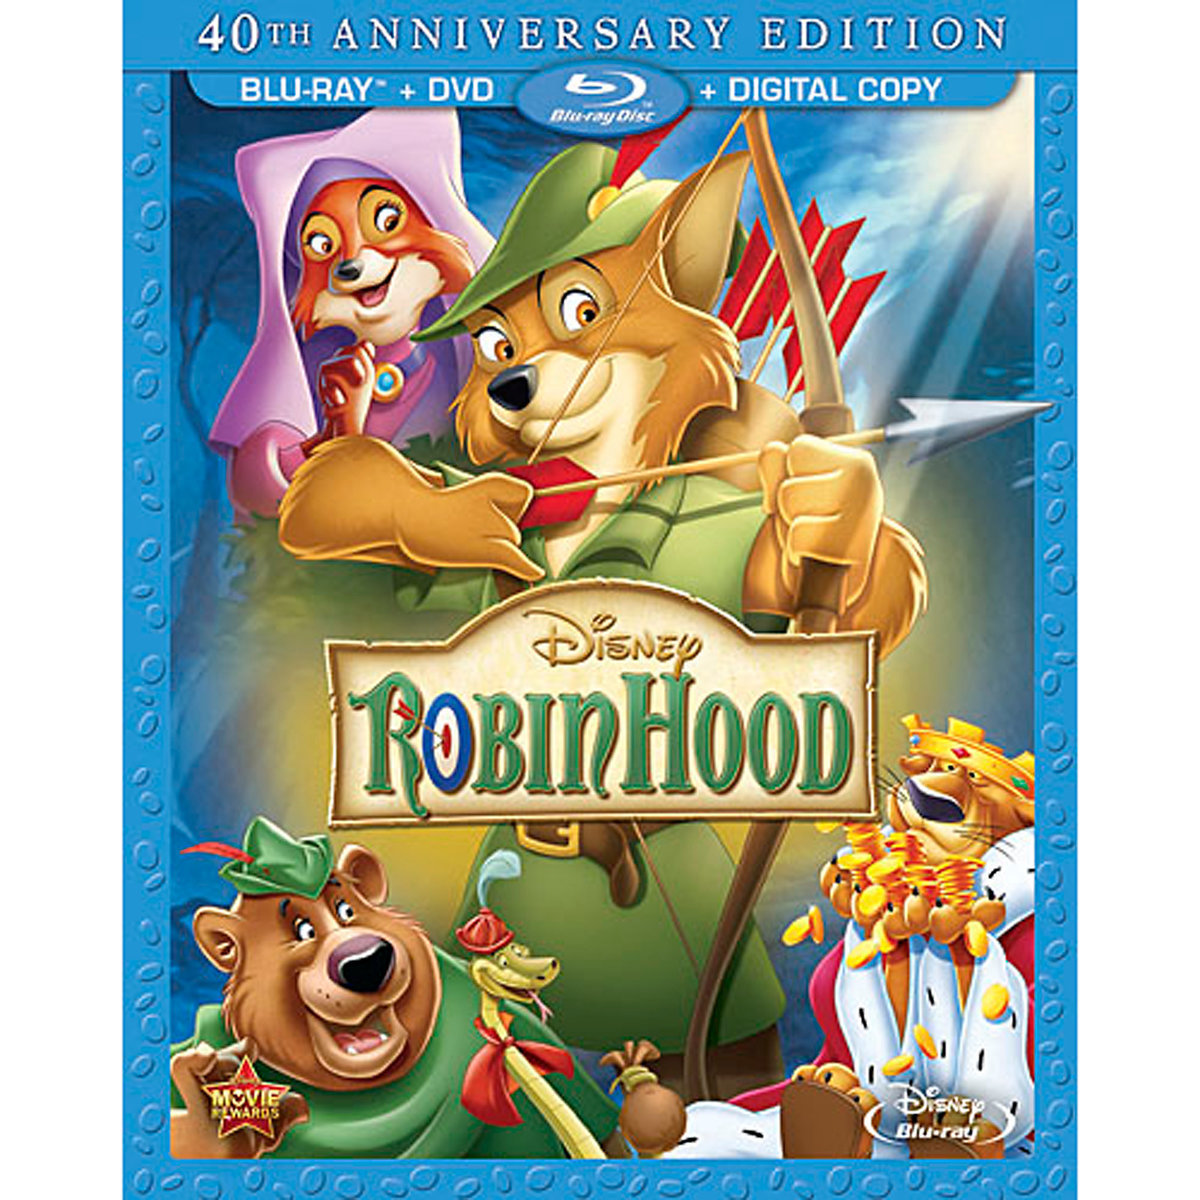 Robin Hood (40th Anniversary Edition) (Blu-ray + DVD + Digital Copy)